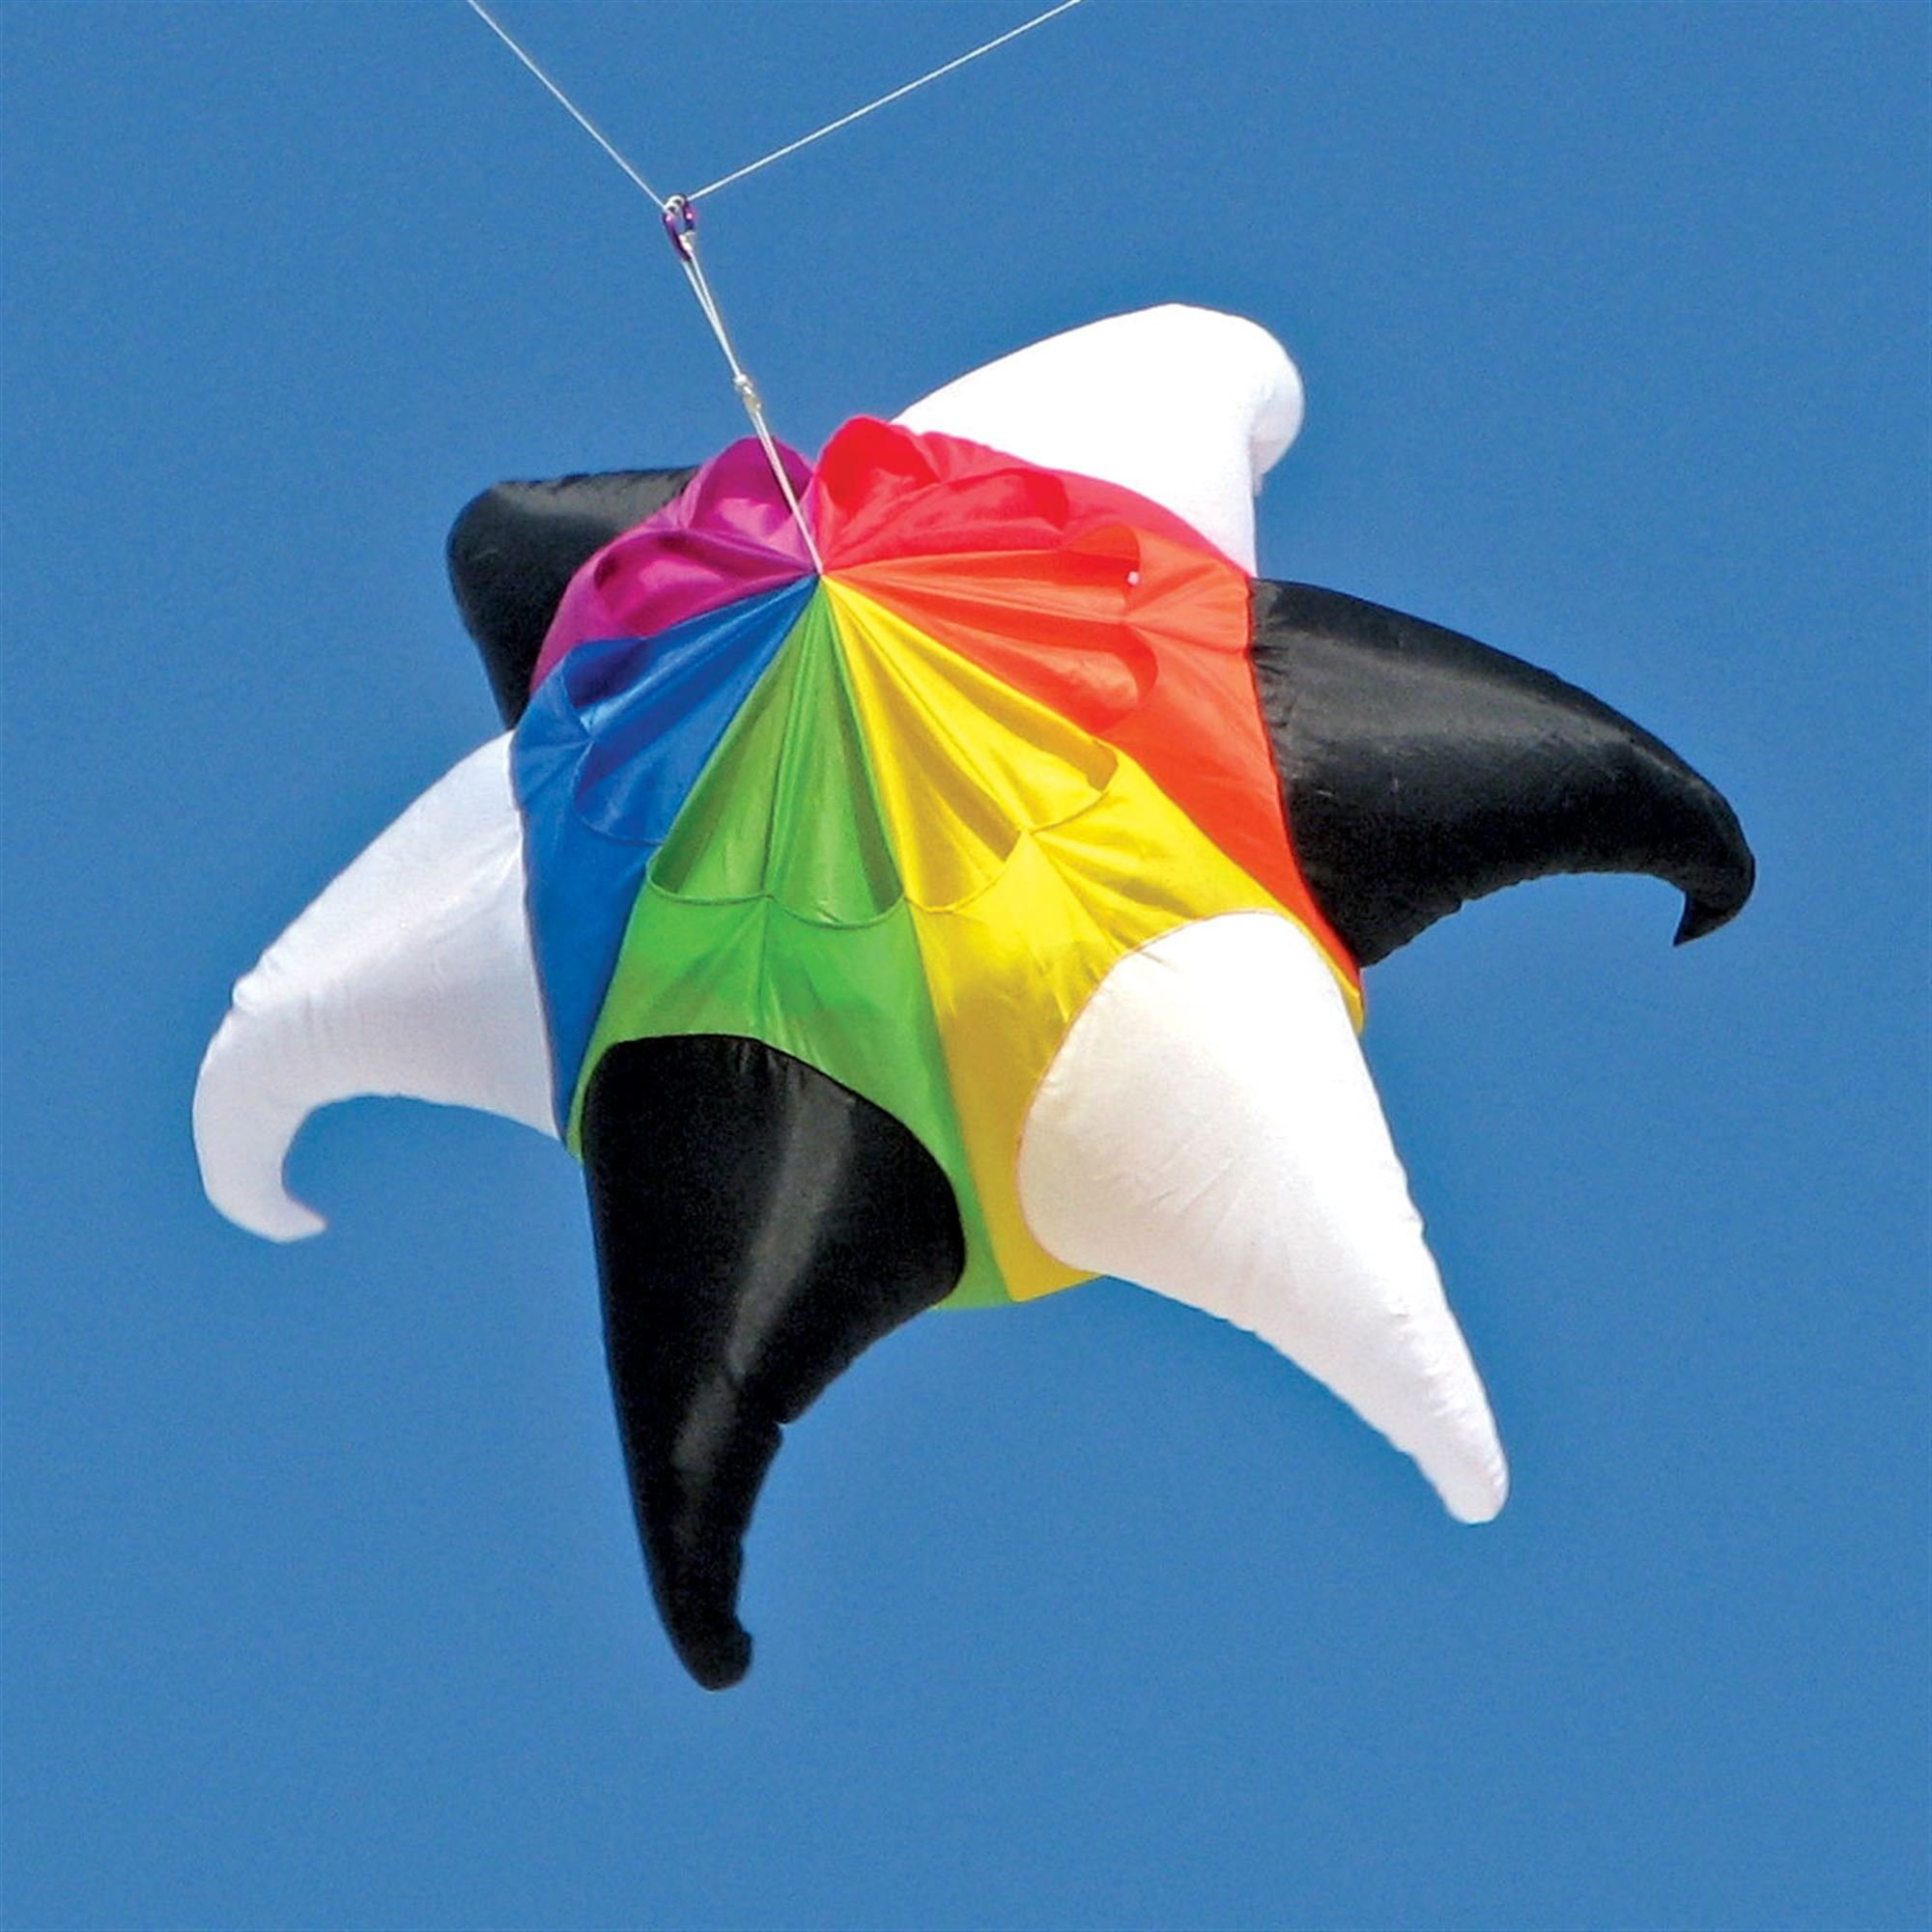 3-ft. Willi Koch Star Orb Inflatable Kite Accessory